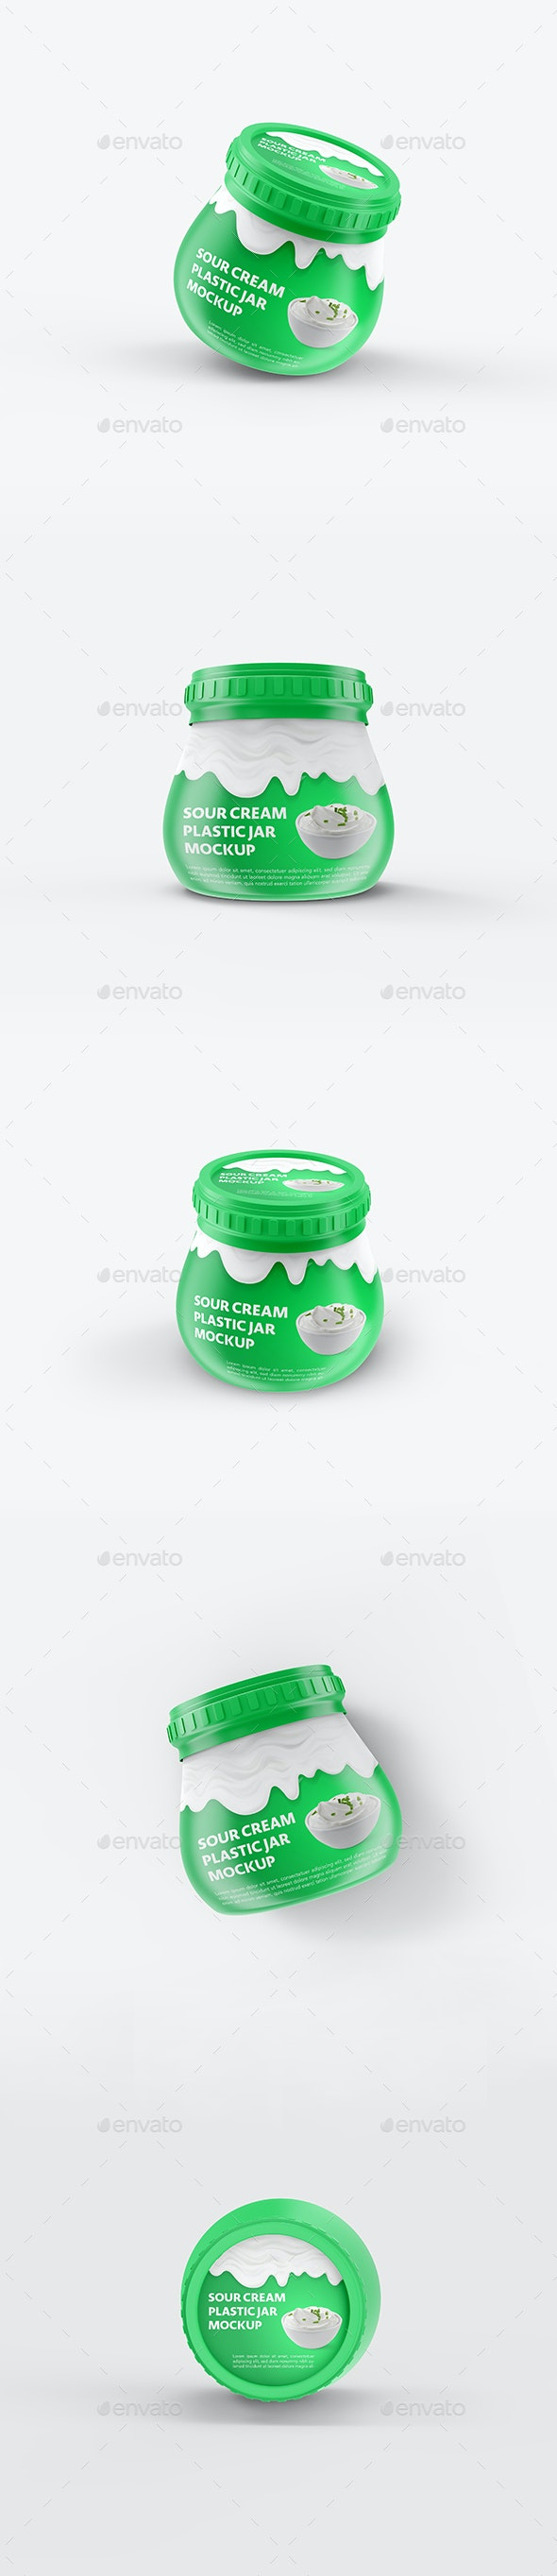 Sour Cream Plastic Jar Mockup - Food and Drink Packaging